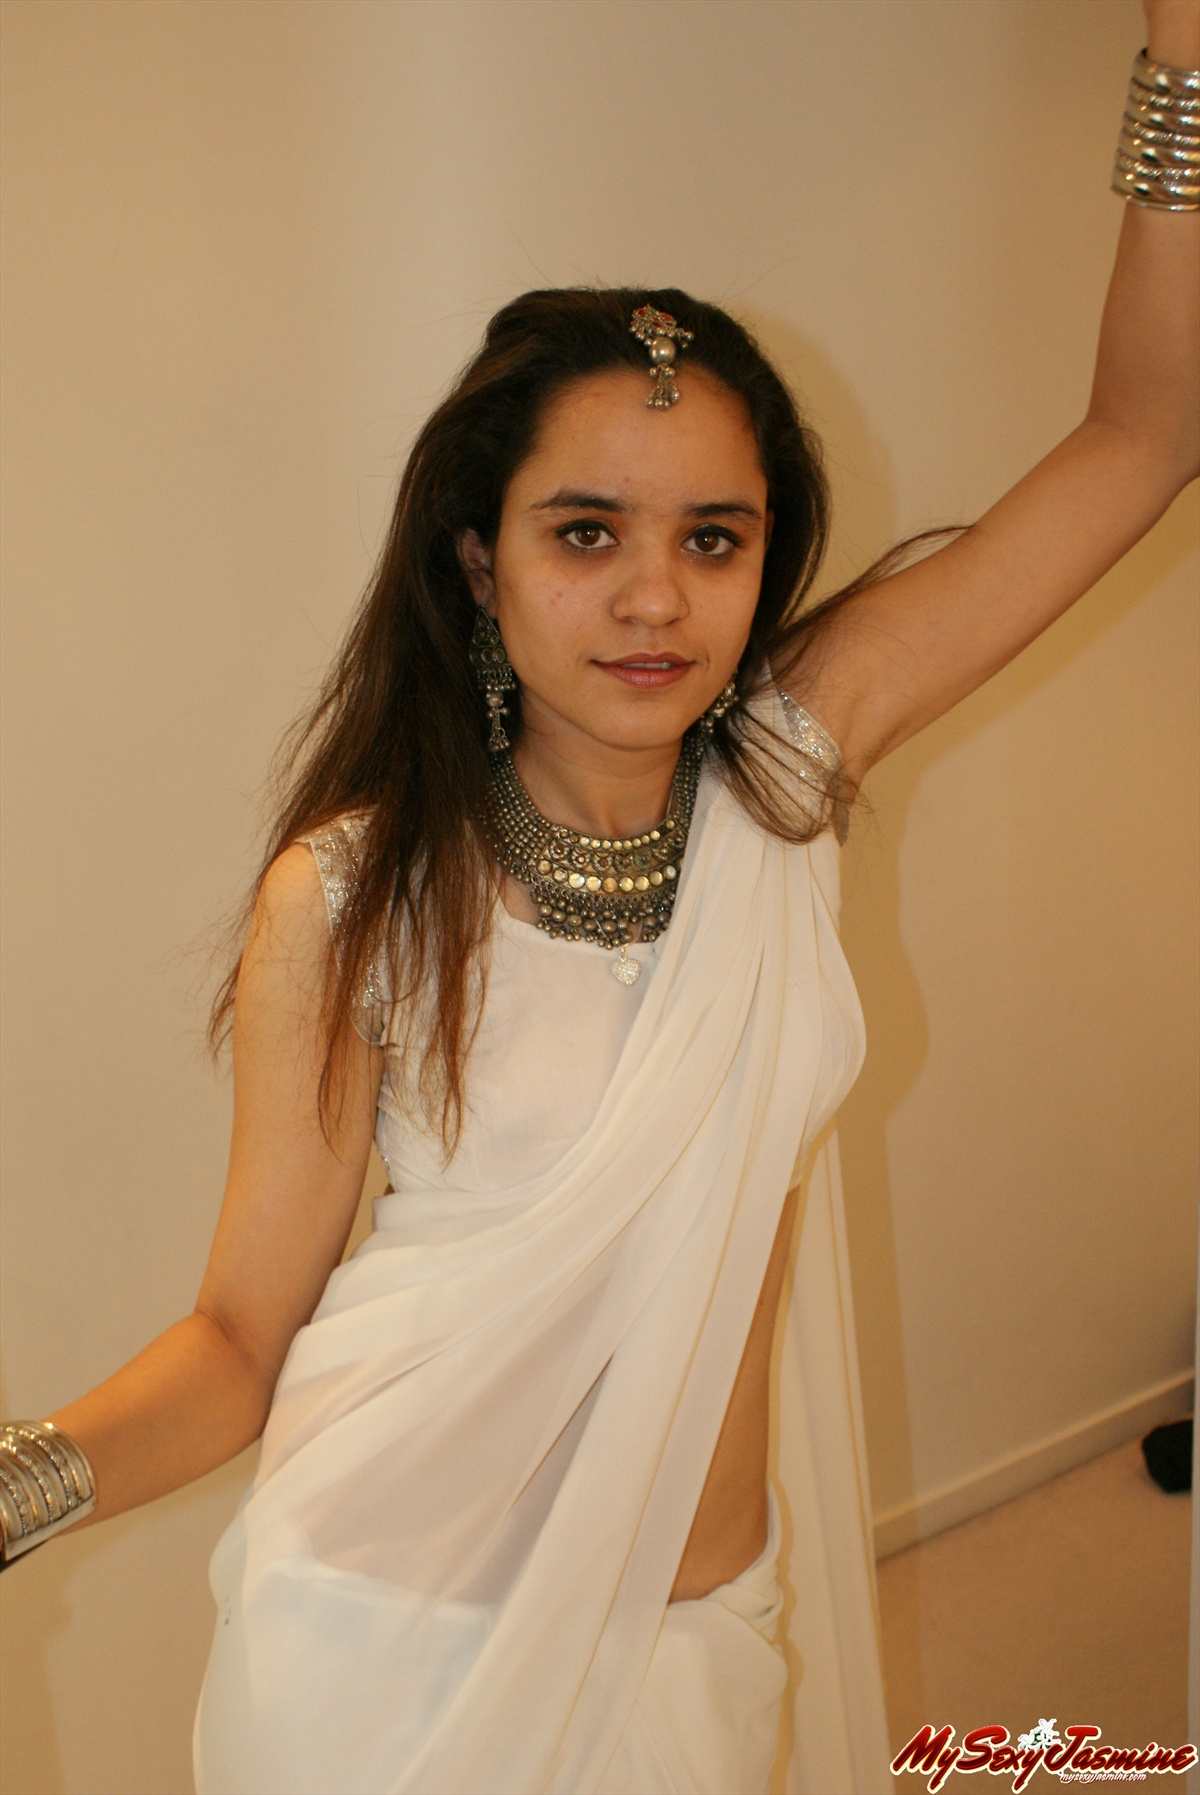 Pic gal 0026. Jasmine in white indian saree looking hot teasing